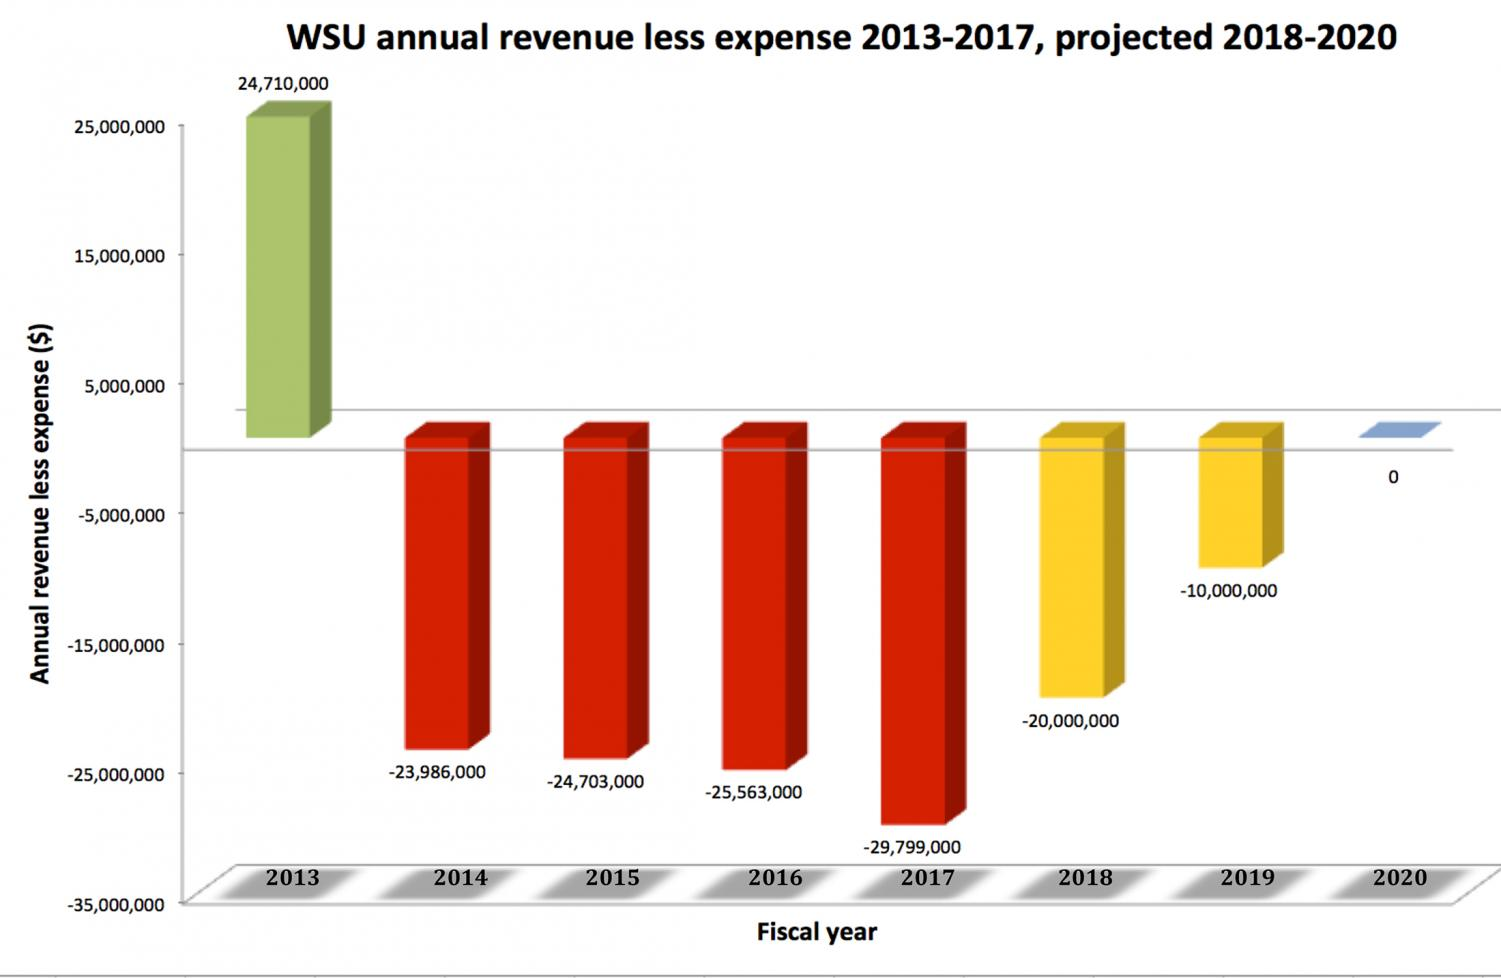 WSU overspent its budget by $20-$30 million annually from 2014-2017, depleting reserves by about $100 million. The university plans to cut spending by $10 million annually for the next three years, eliminating the deficit in 2020.